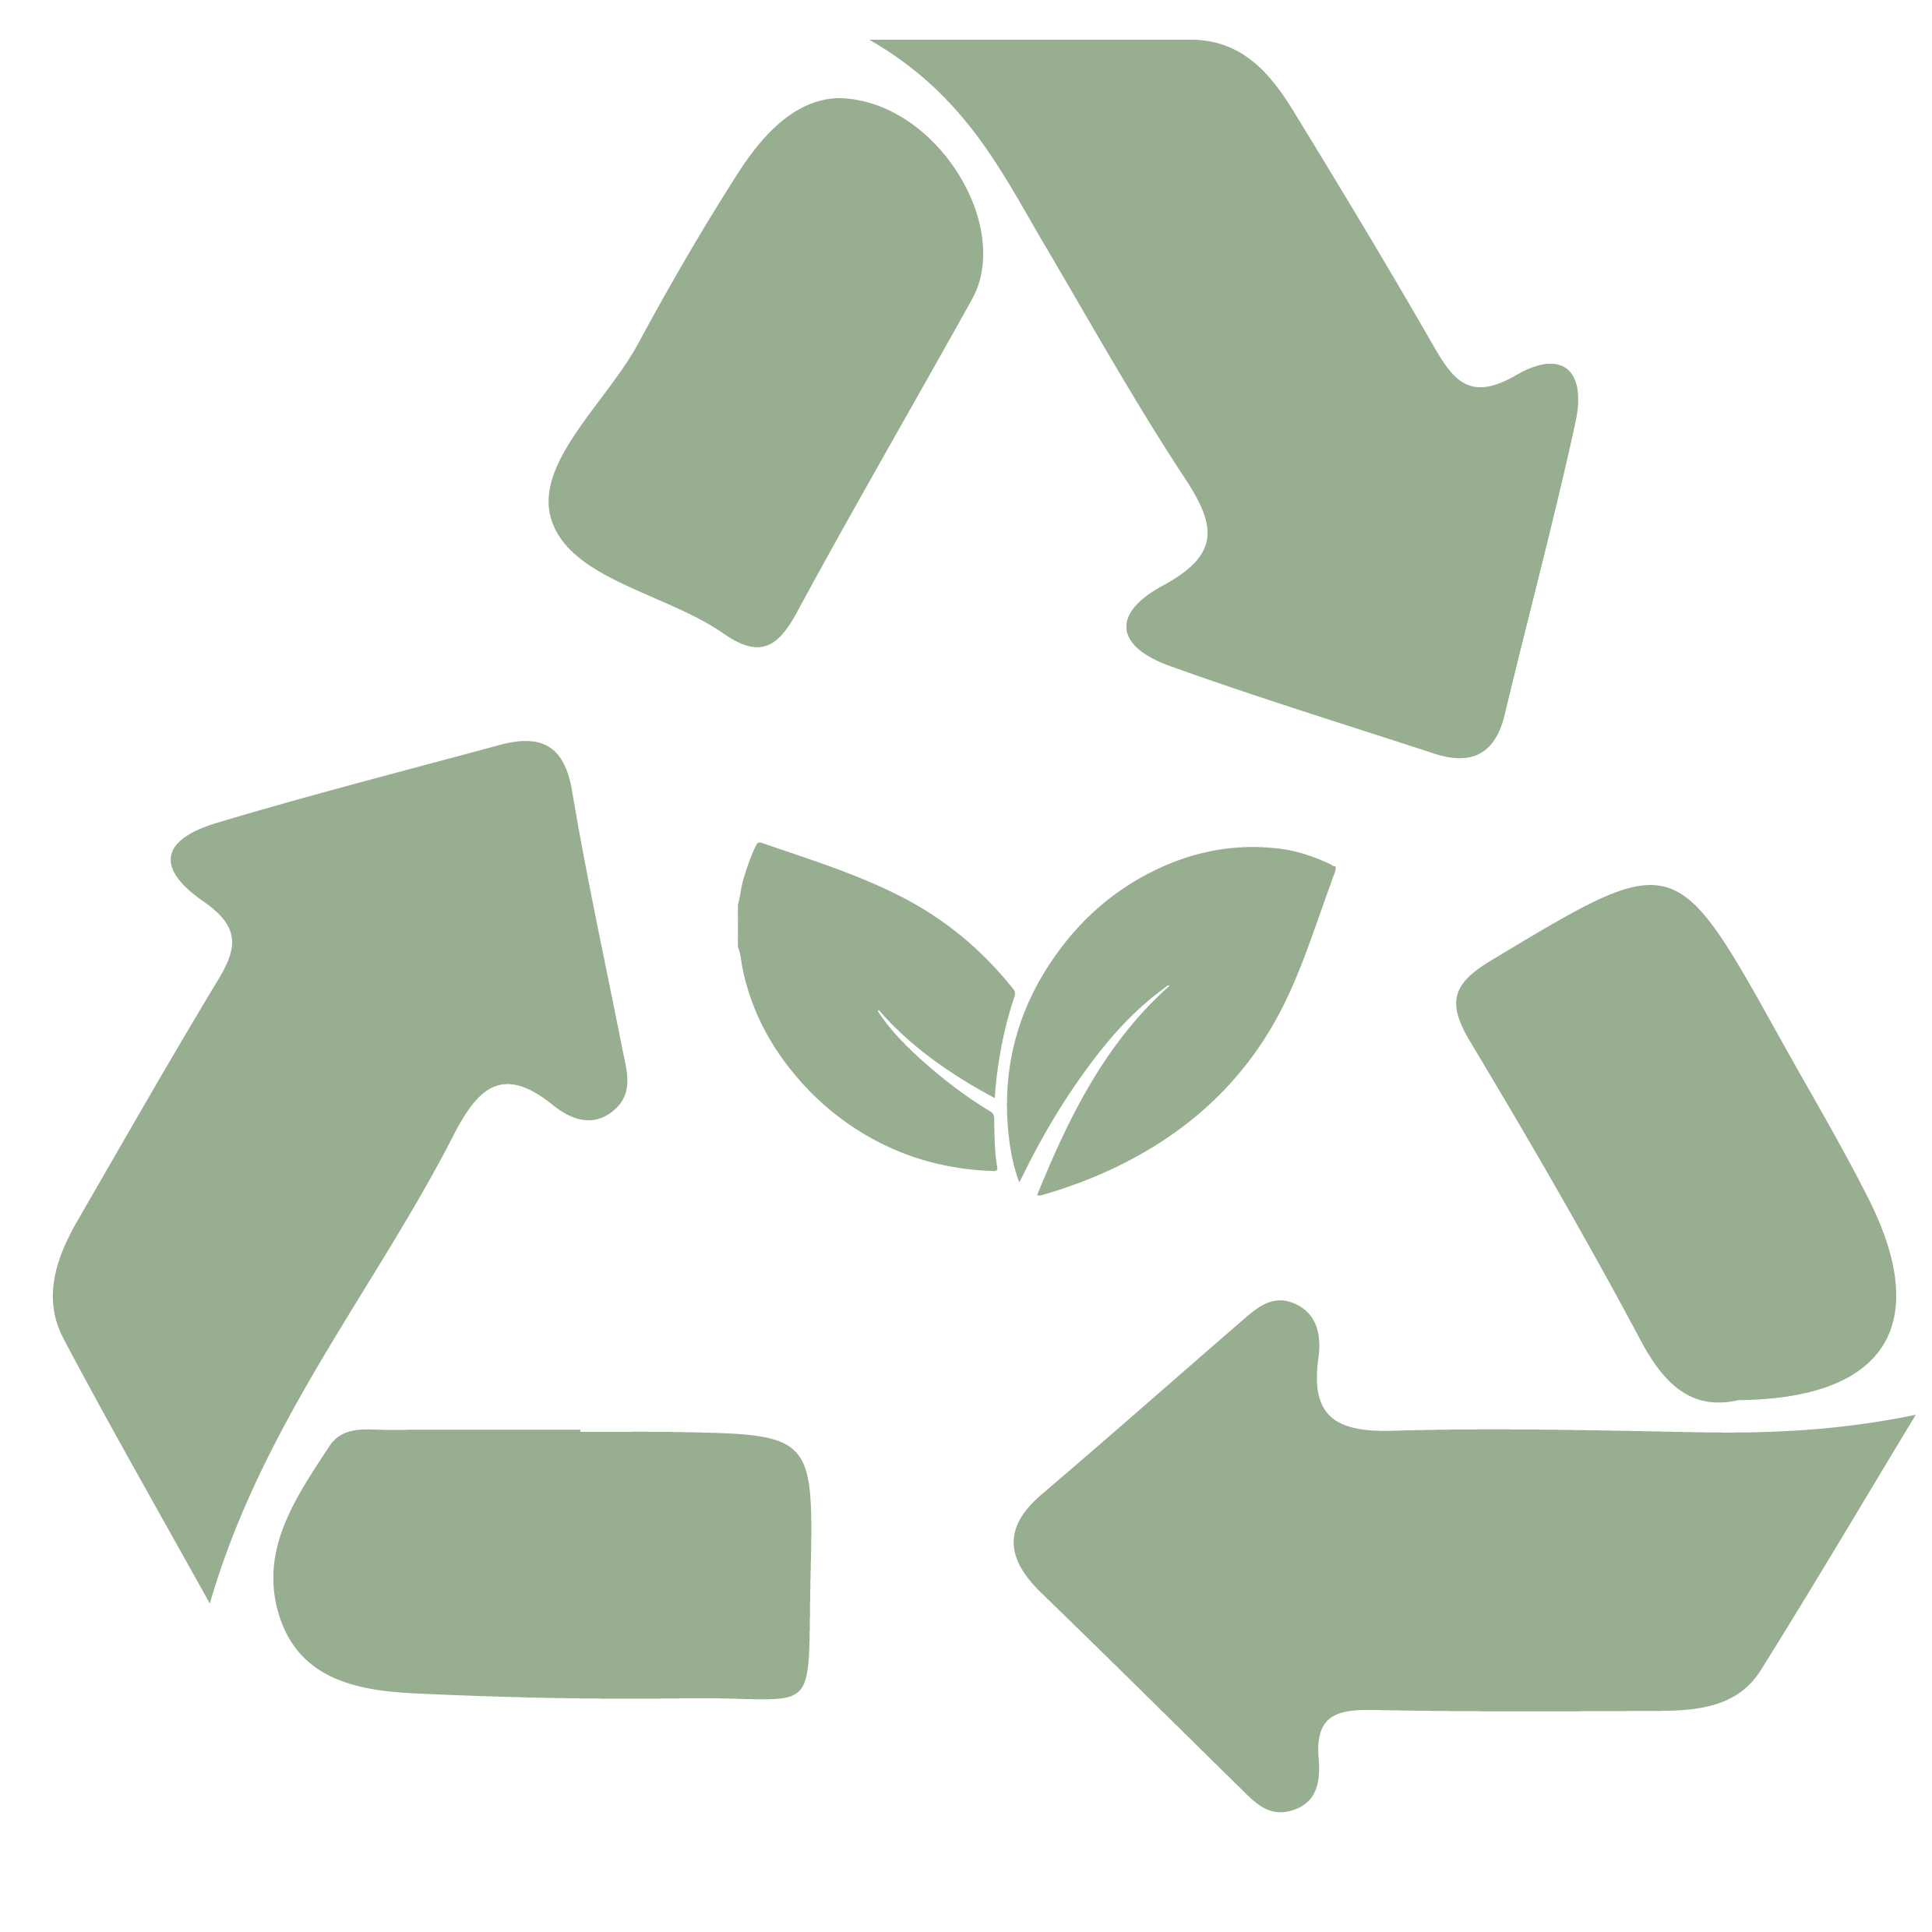 Renewable Polymers Biopolymers Frequently Asked Questions FAQS